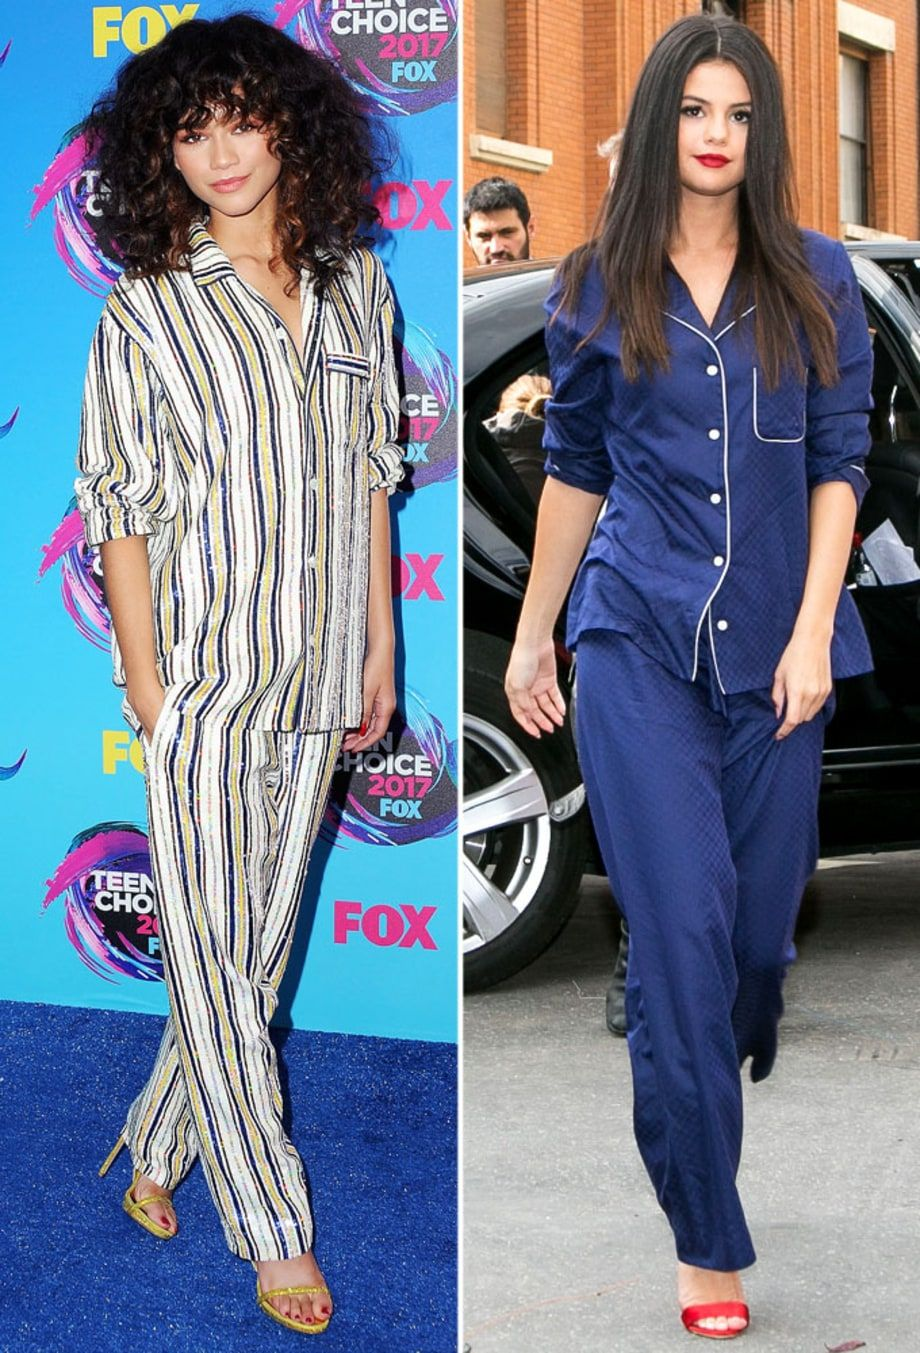 Celebrities have been spotted wearing pajamas as street ...